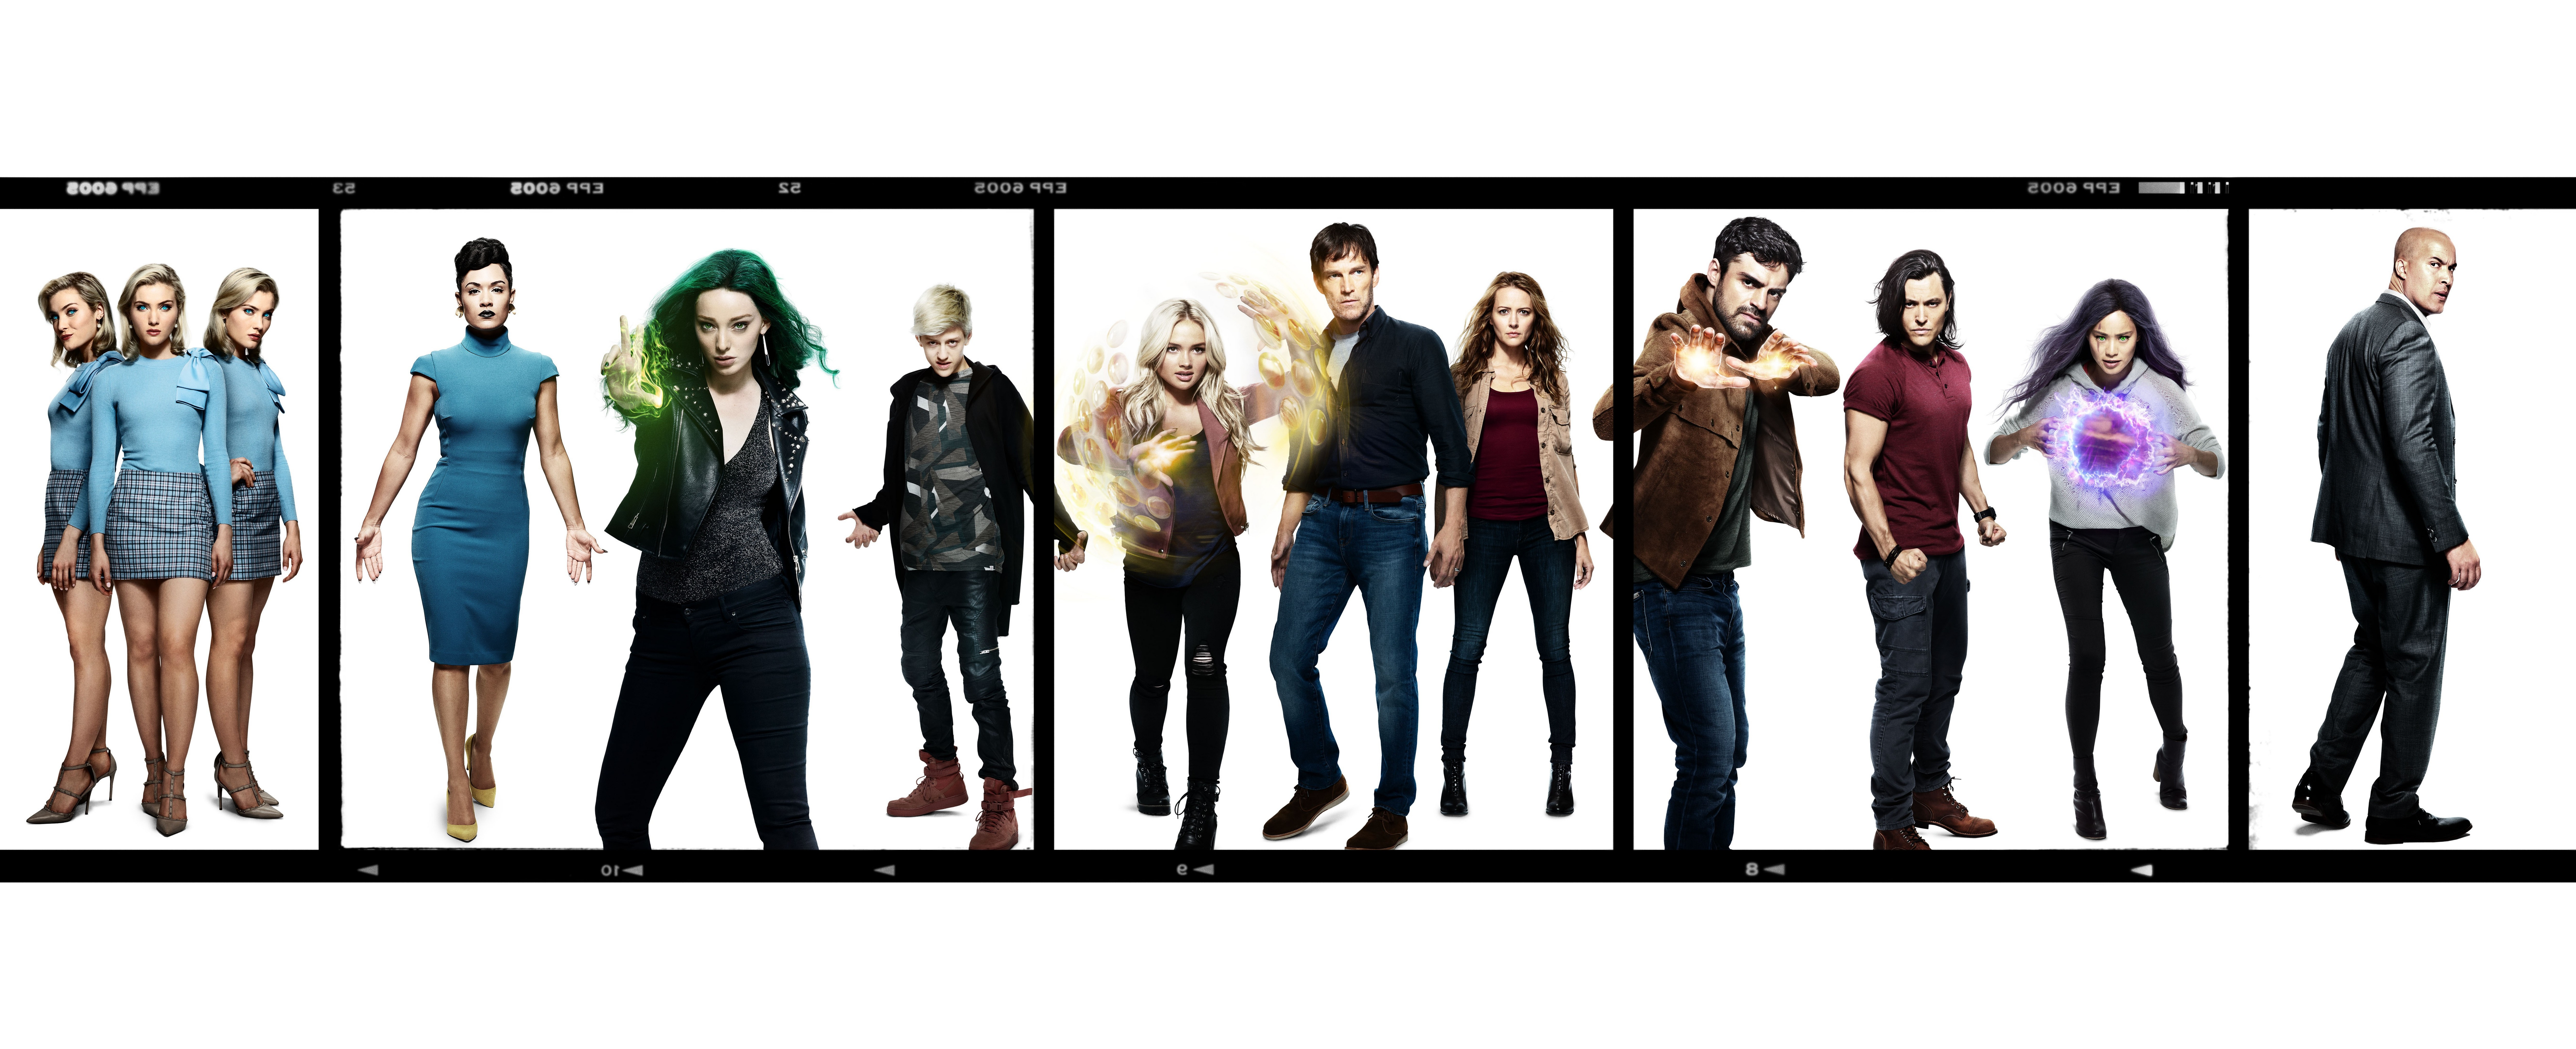 The Gifted Season 2 Official Picture